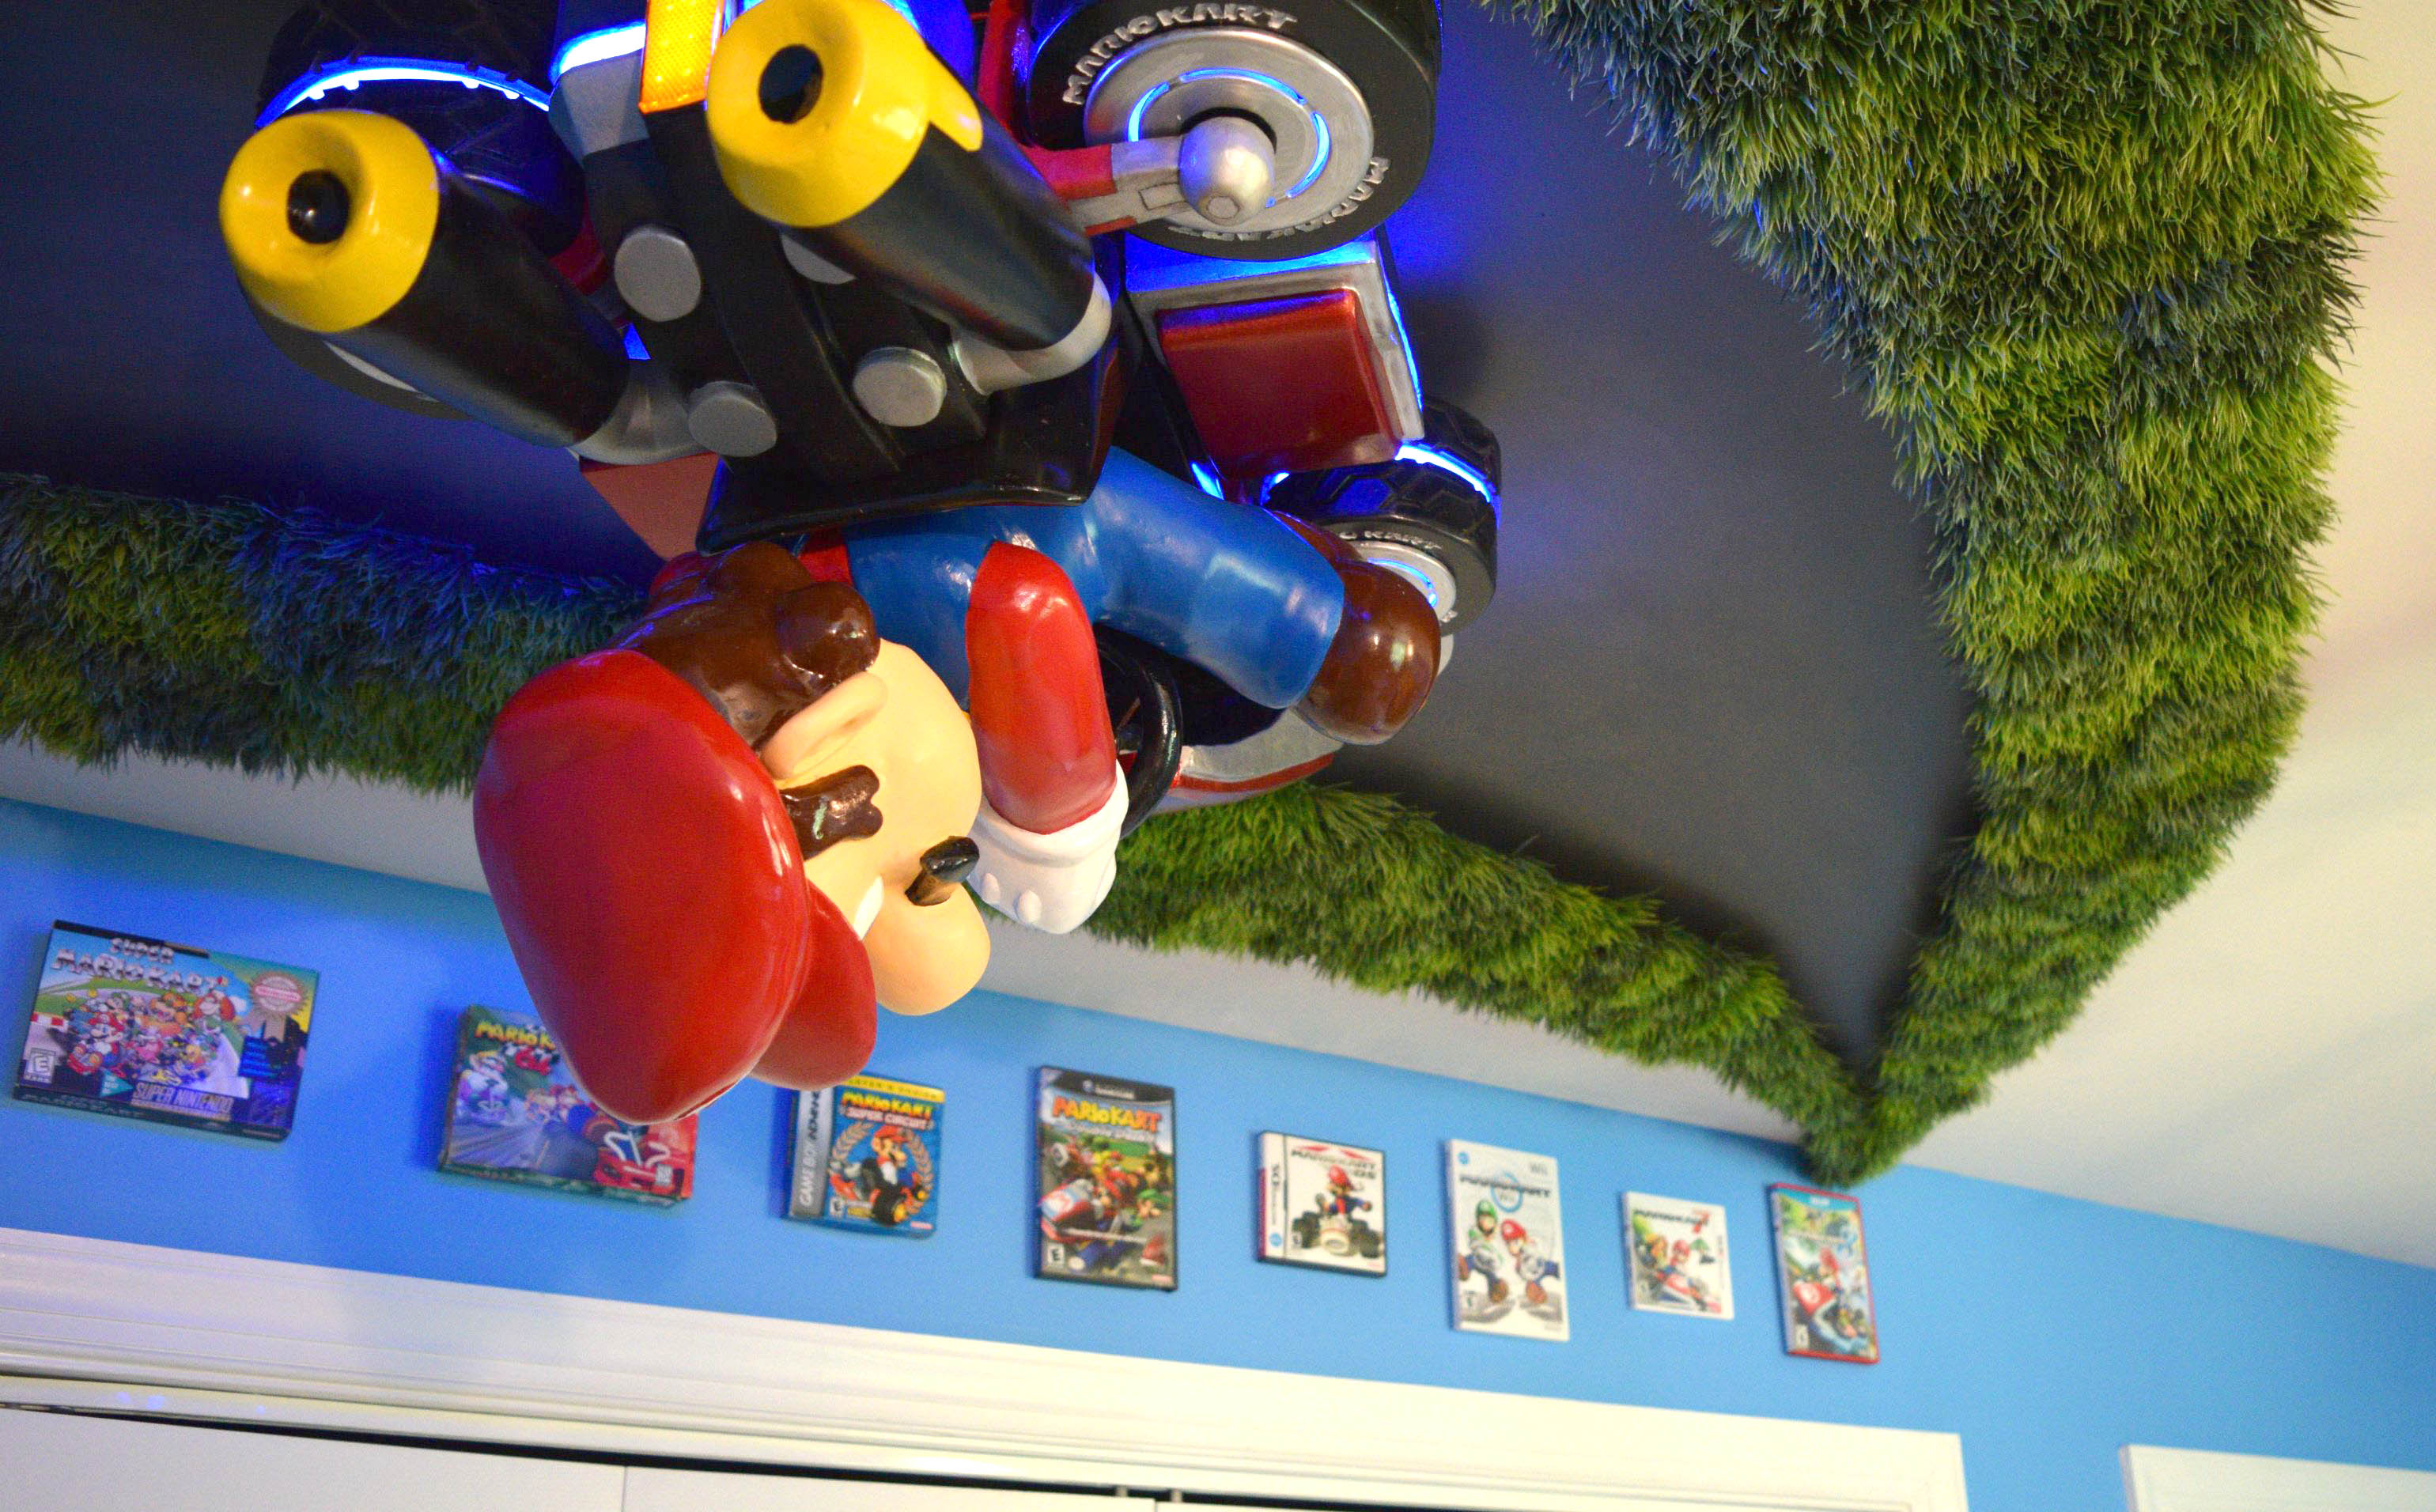 mario-kart-room-featured-image-1